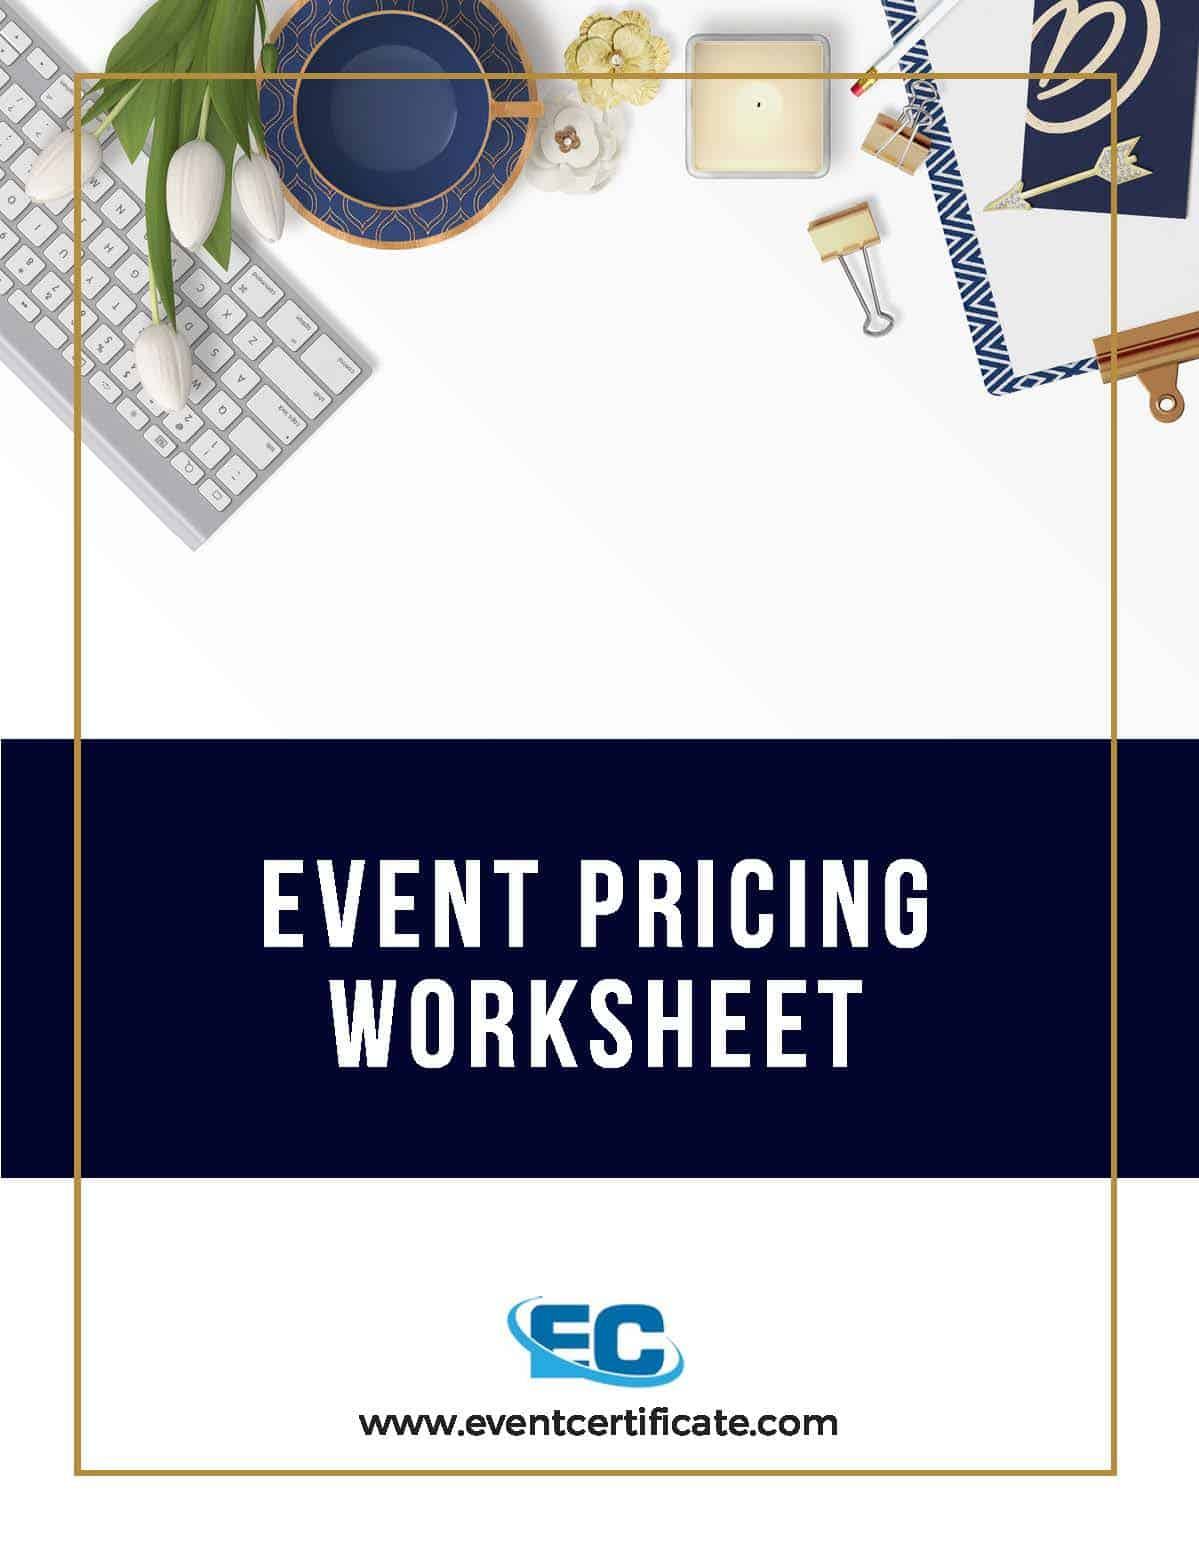 Pricing your event planning service